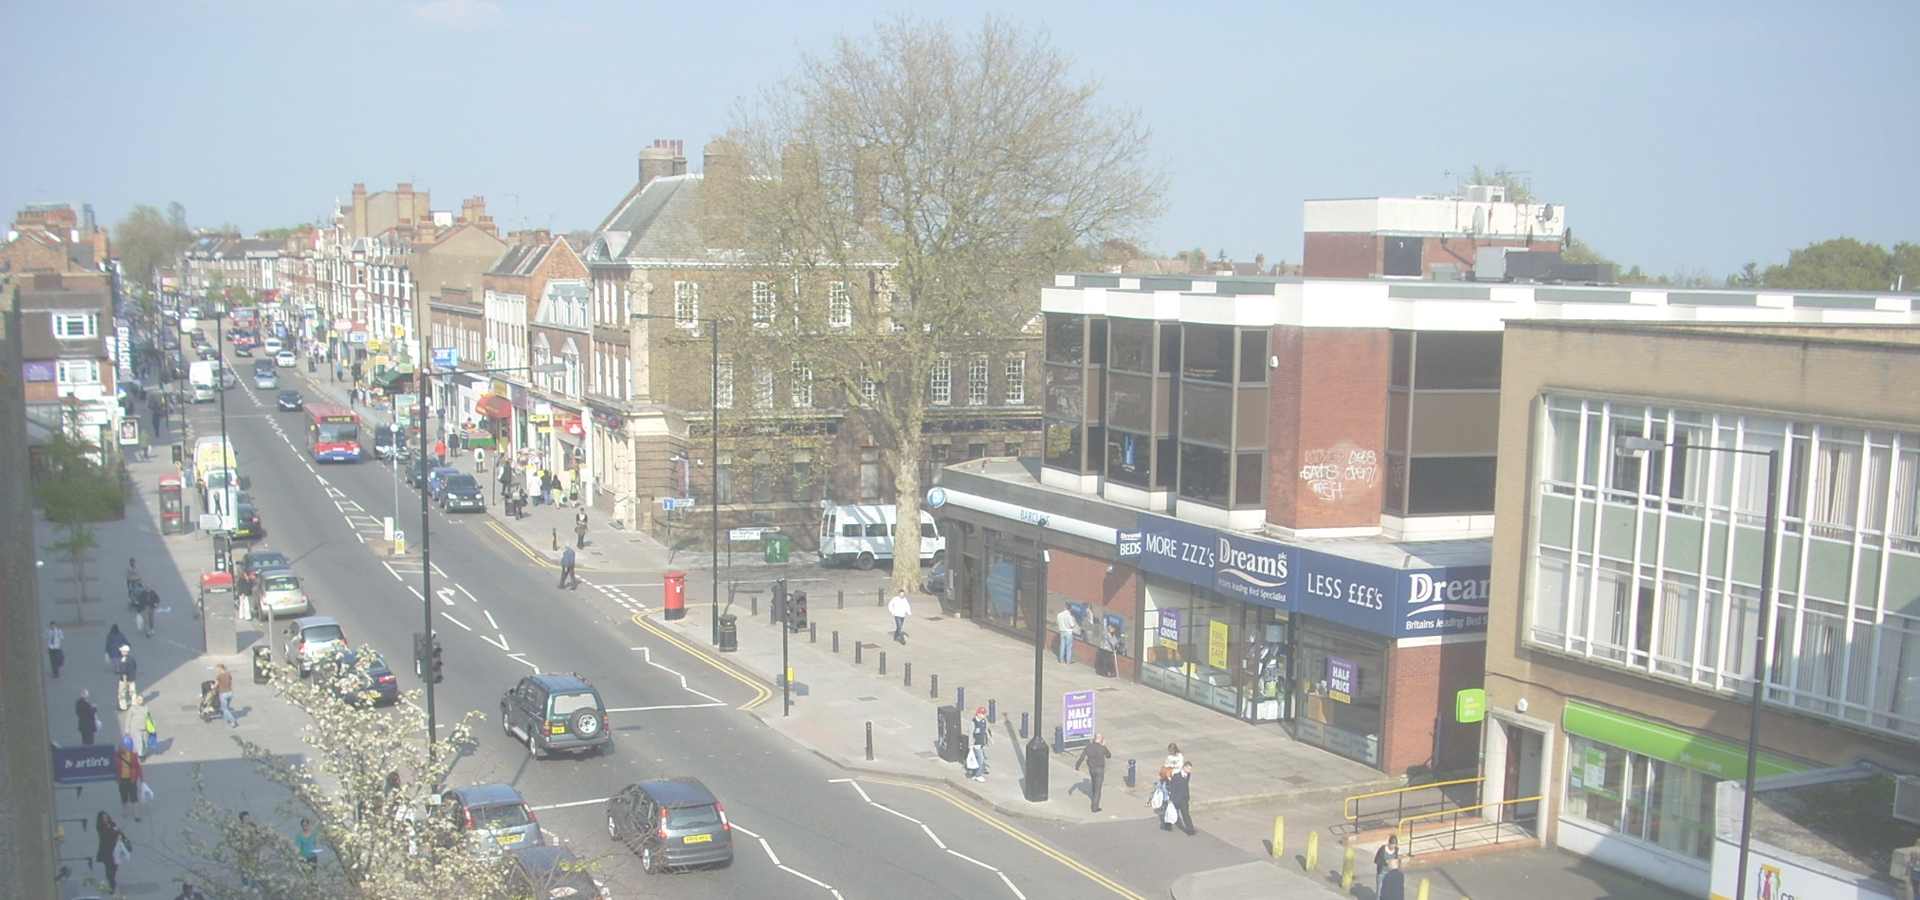 Peer-to-peer advisory in Finchley, Greater London, England, Great Britain